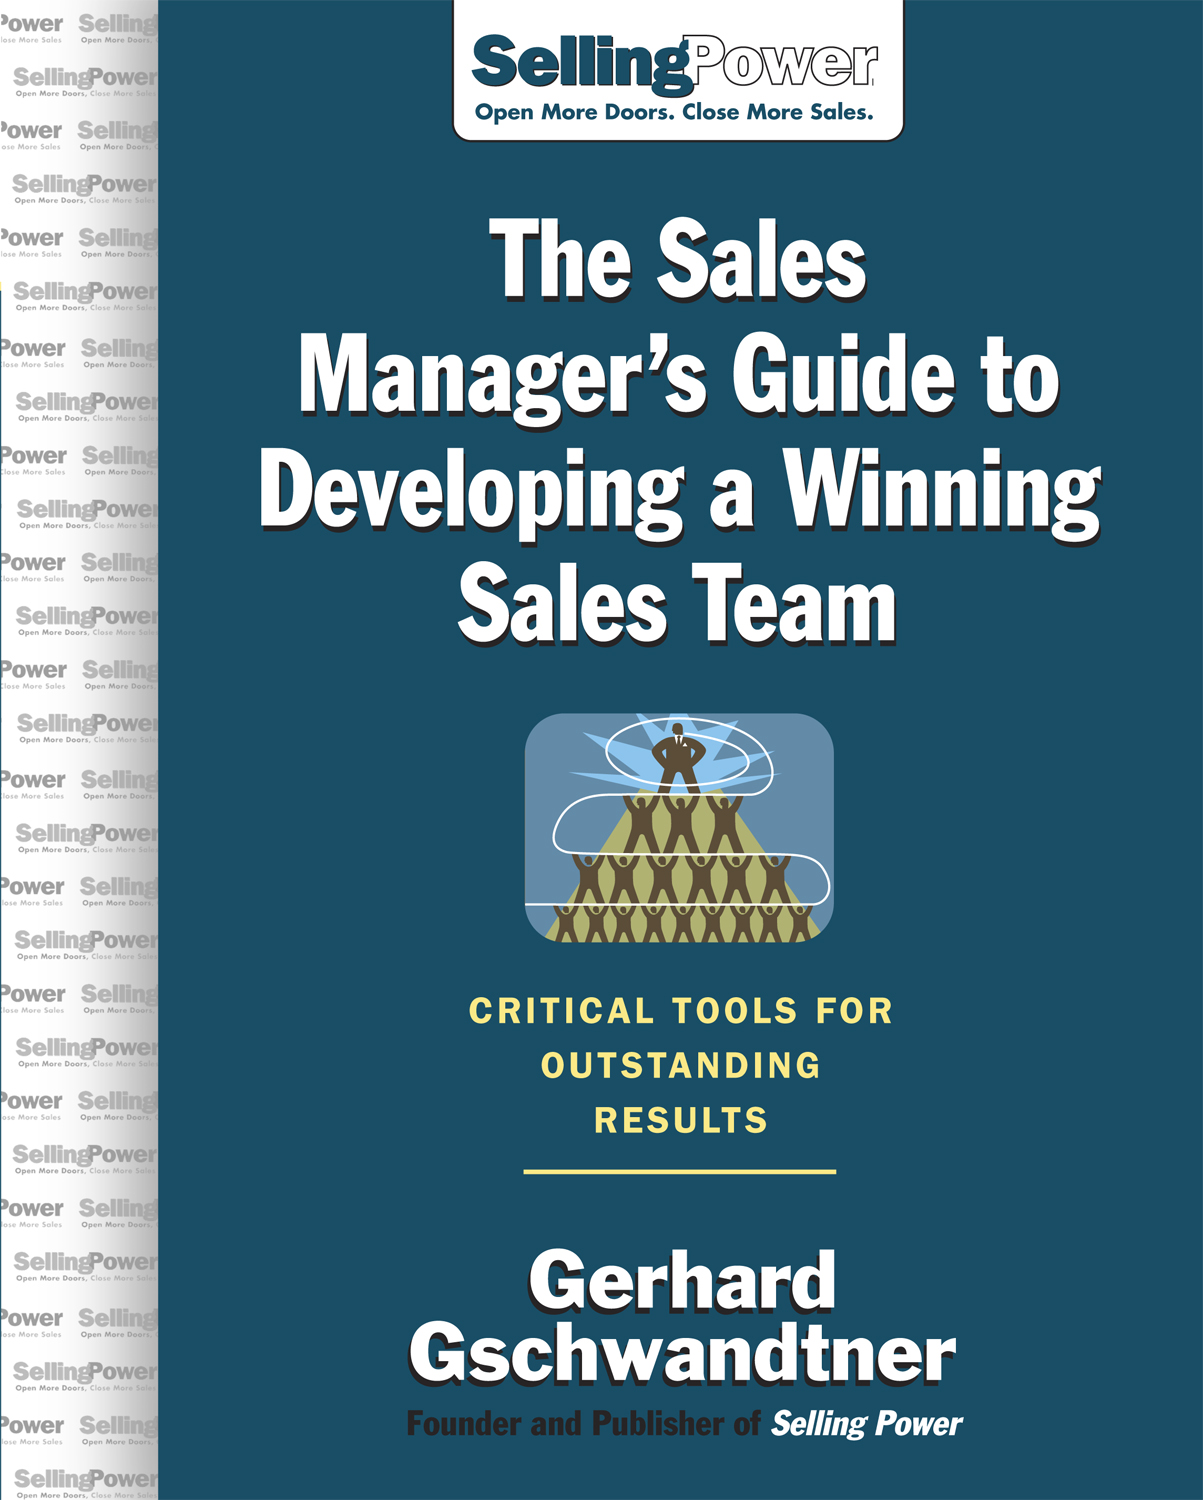 Download Ebook The Sales Manager's Guide to Developing A Winning Sales Team by Gerhard Gschwandtner Pdf